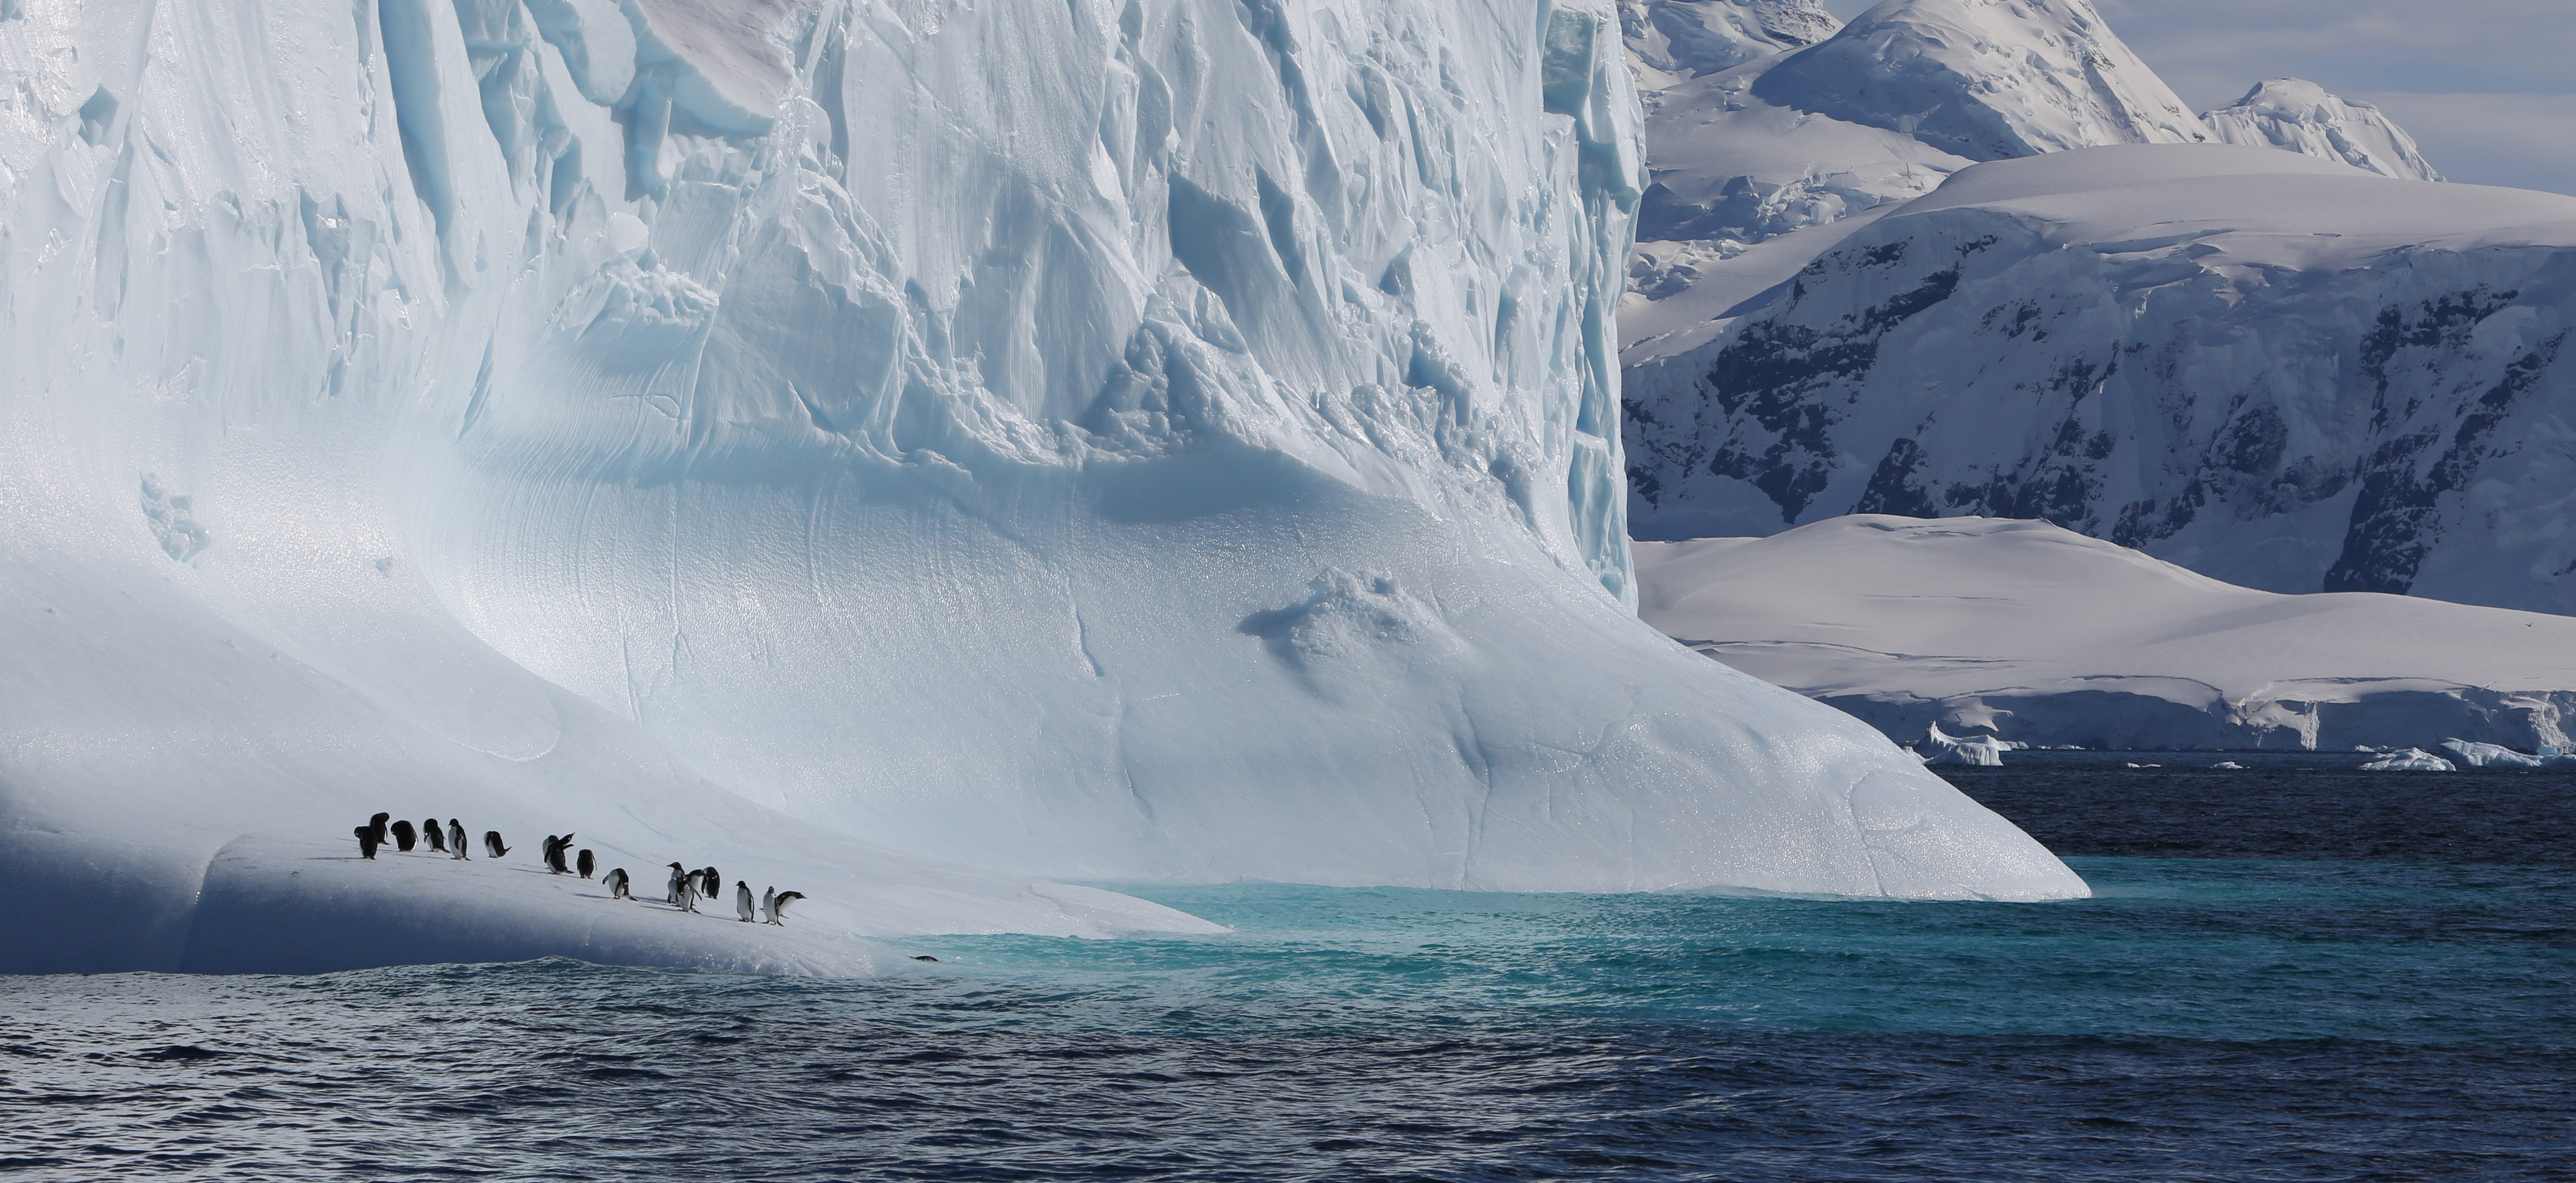 Gentoo penguins taking a rest from fishing on an iceberg in Antarctic Peninsula.